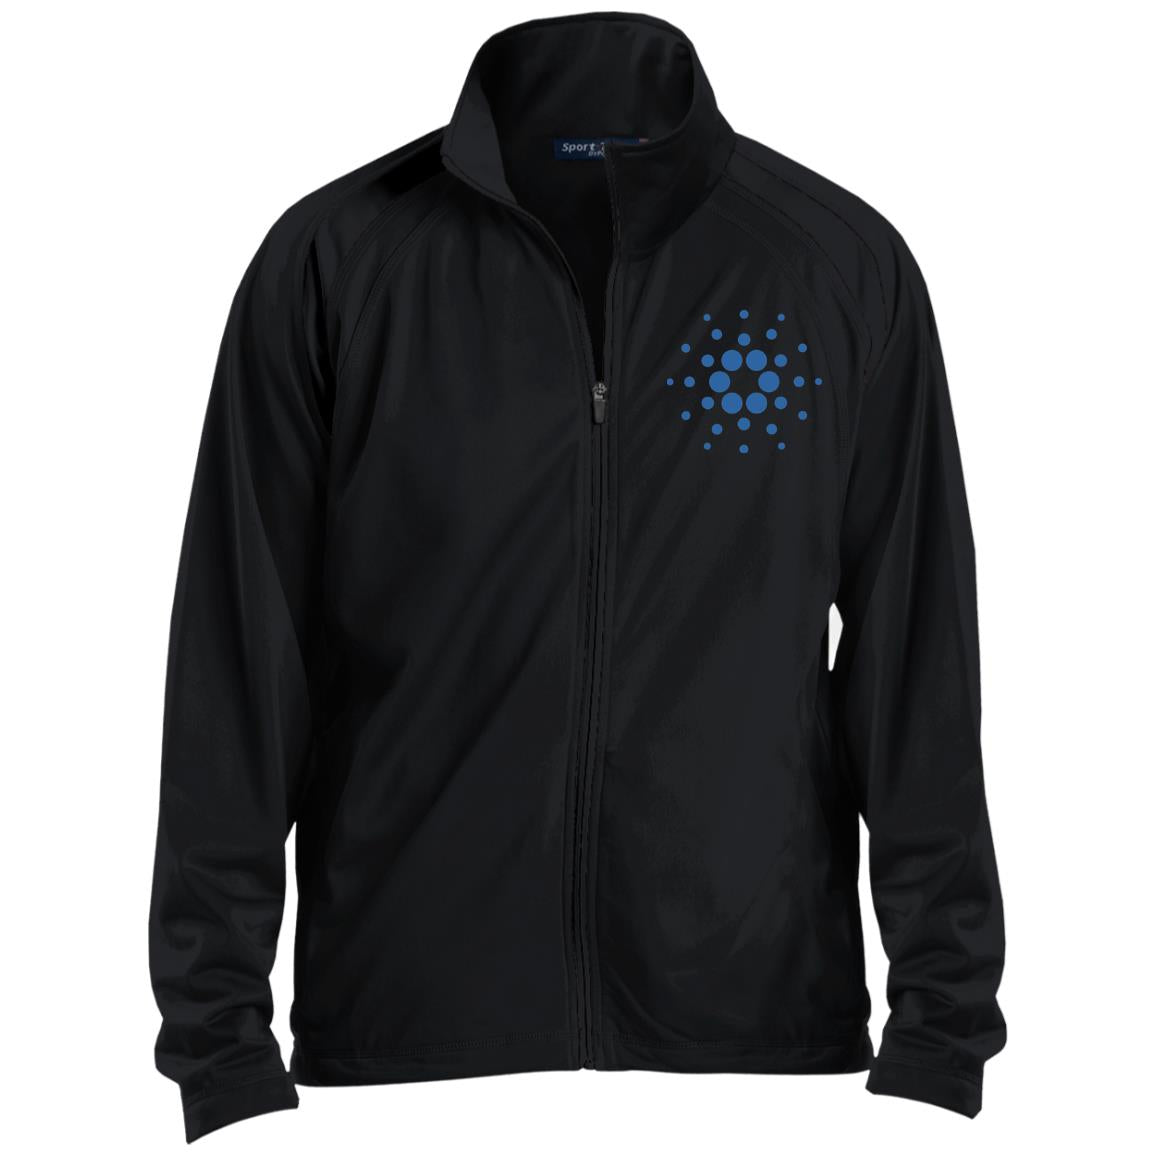 Cardano Raglan Sleeve Warmup Jacket